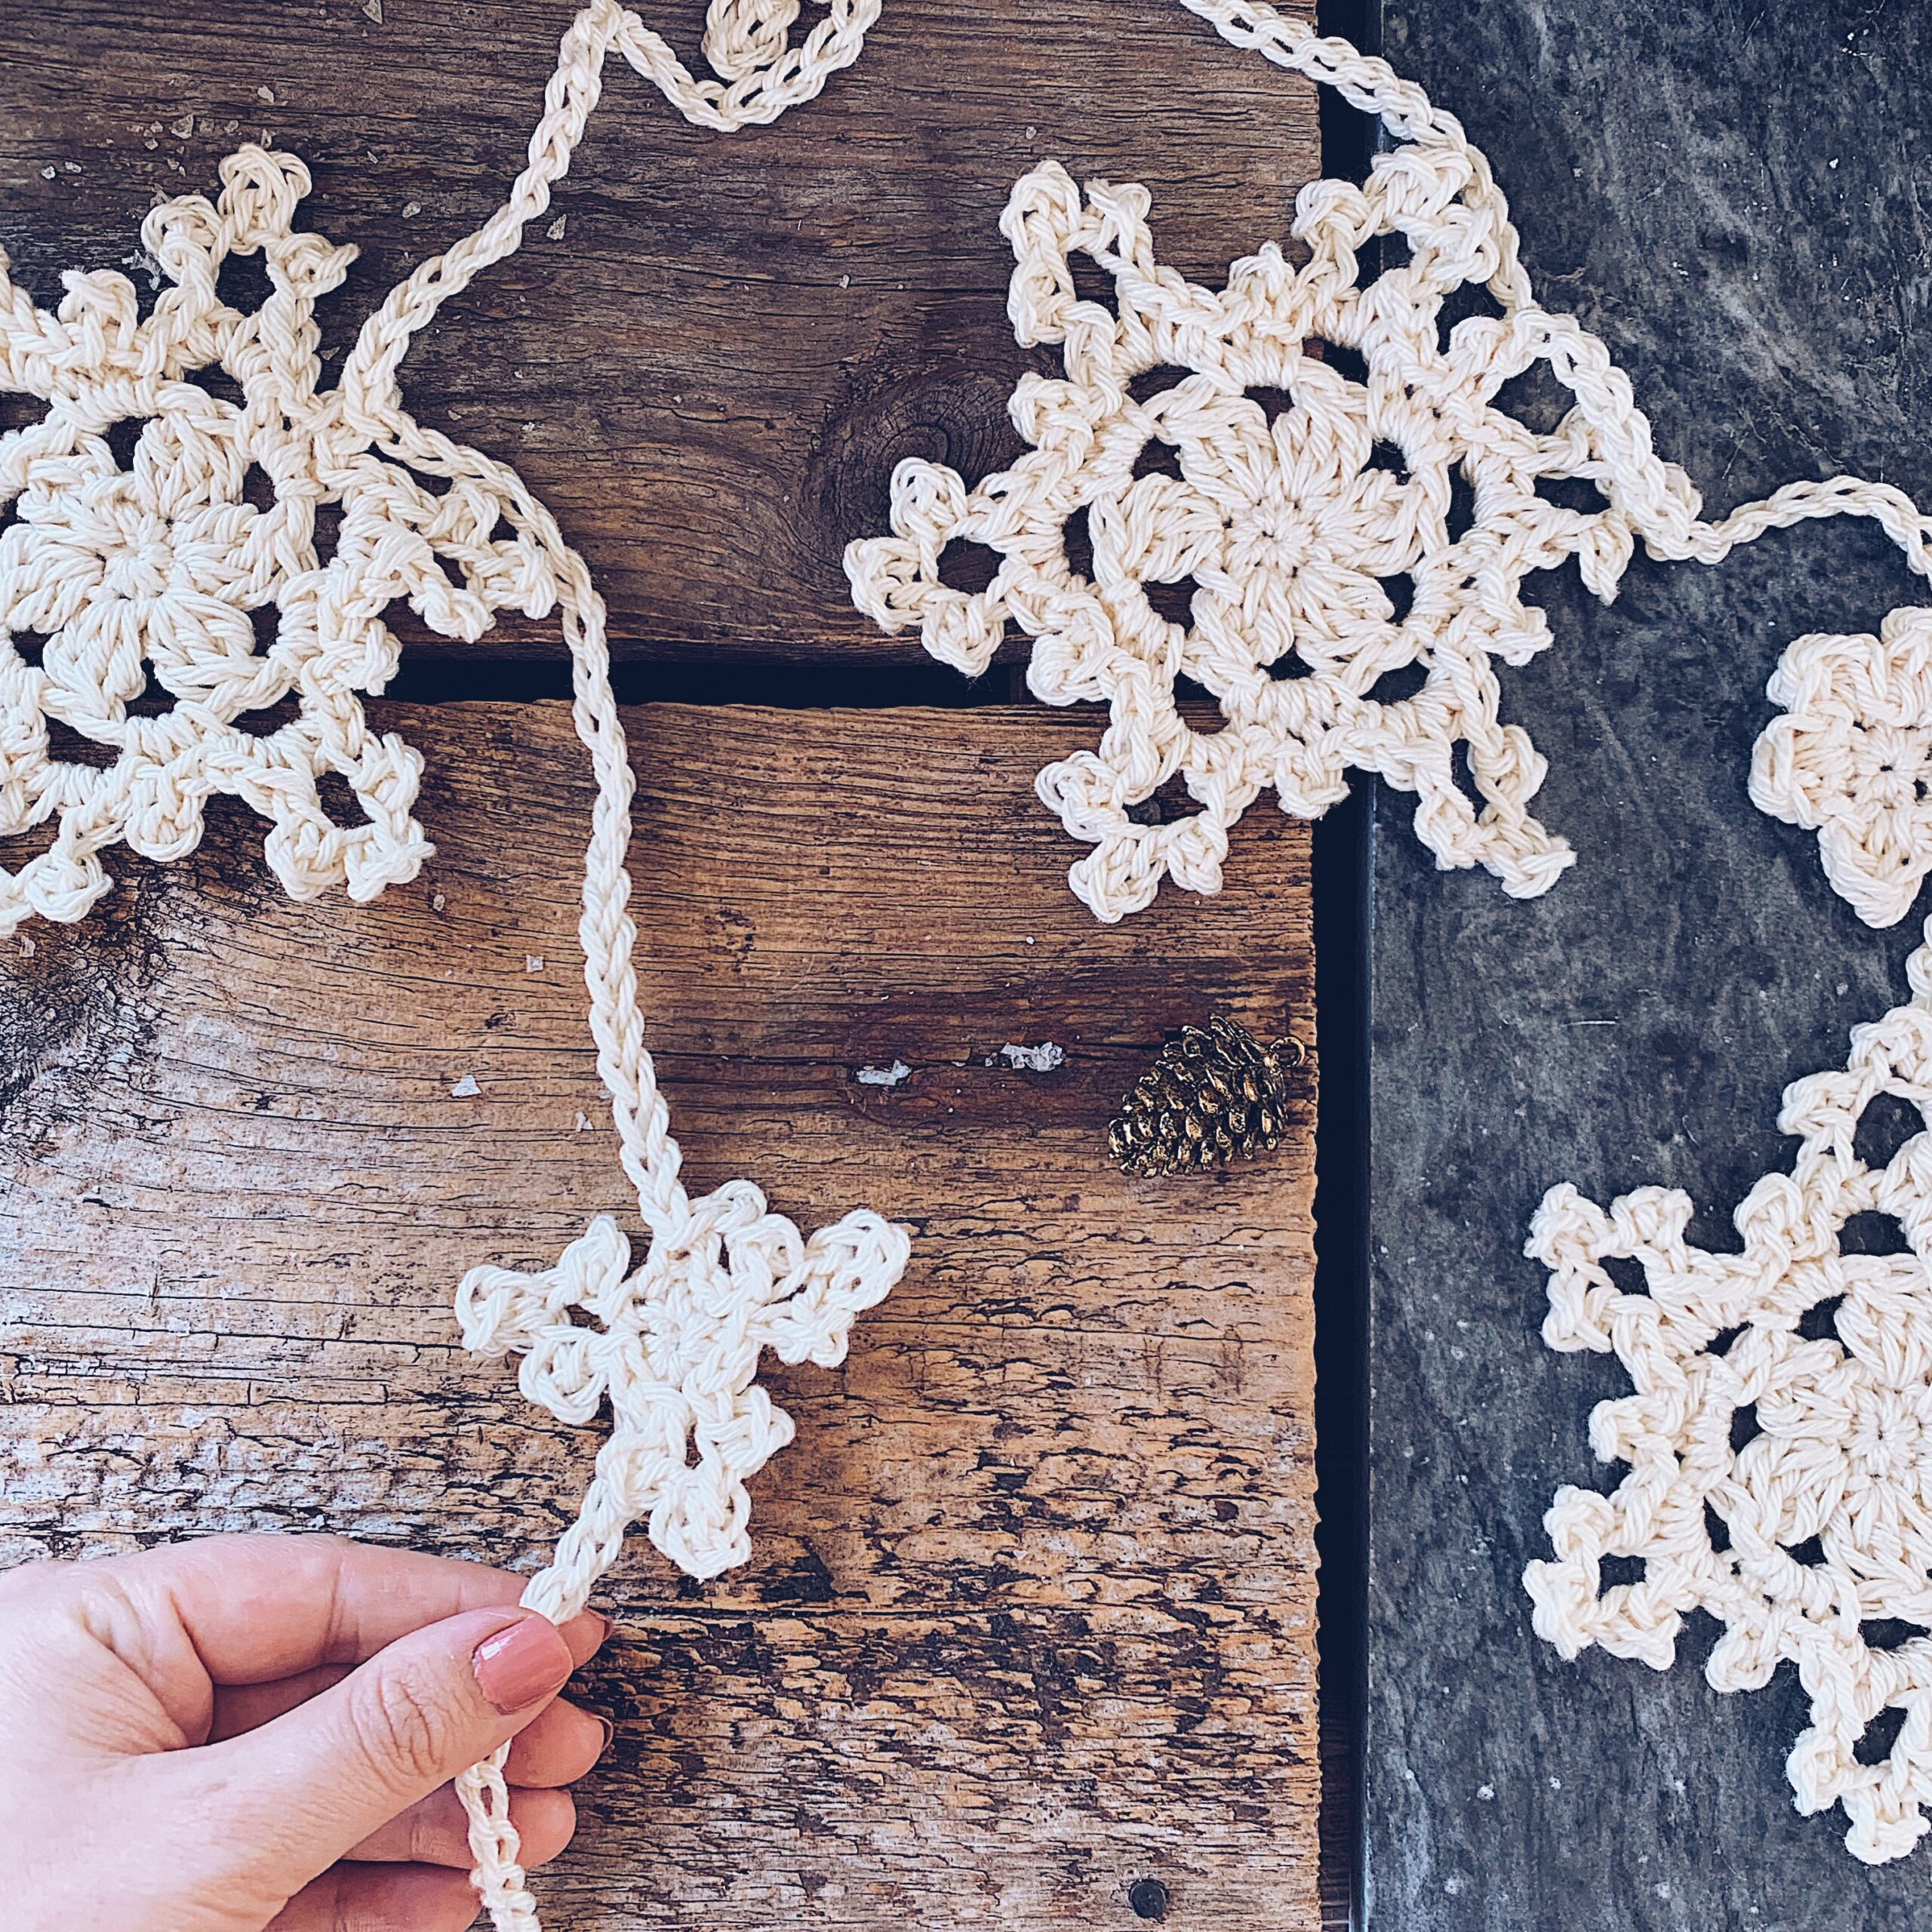 A crocheted Winter In Bloom Bunting in a soft cream colour draped over a wooden background